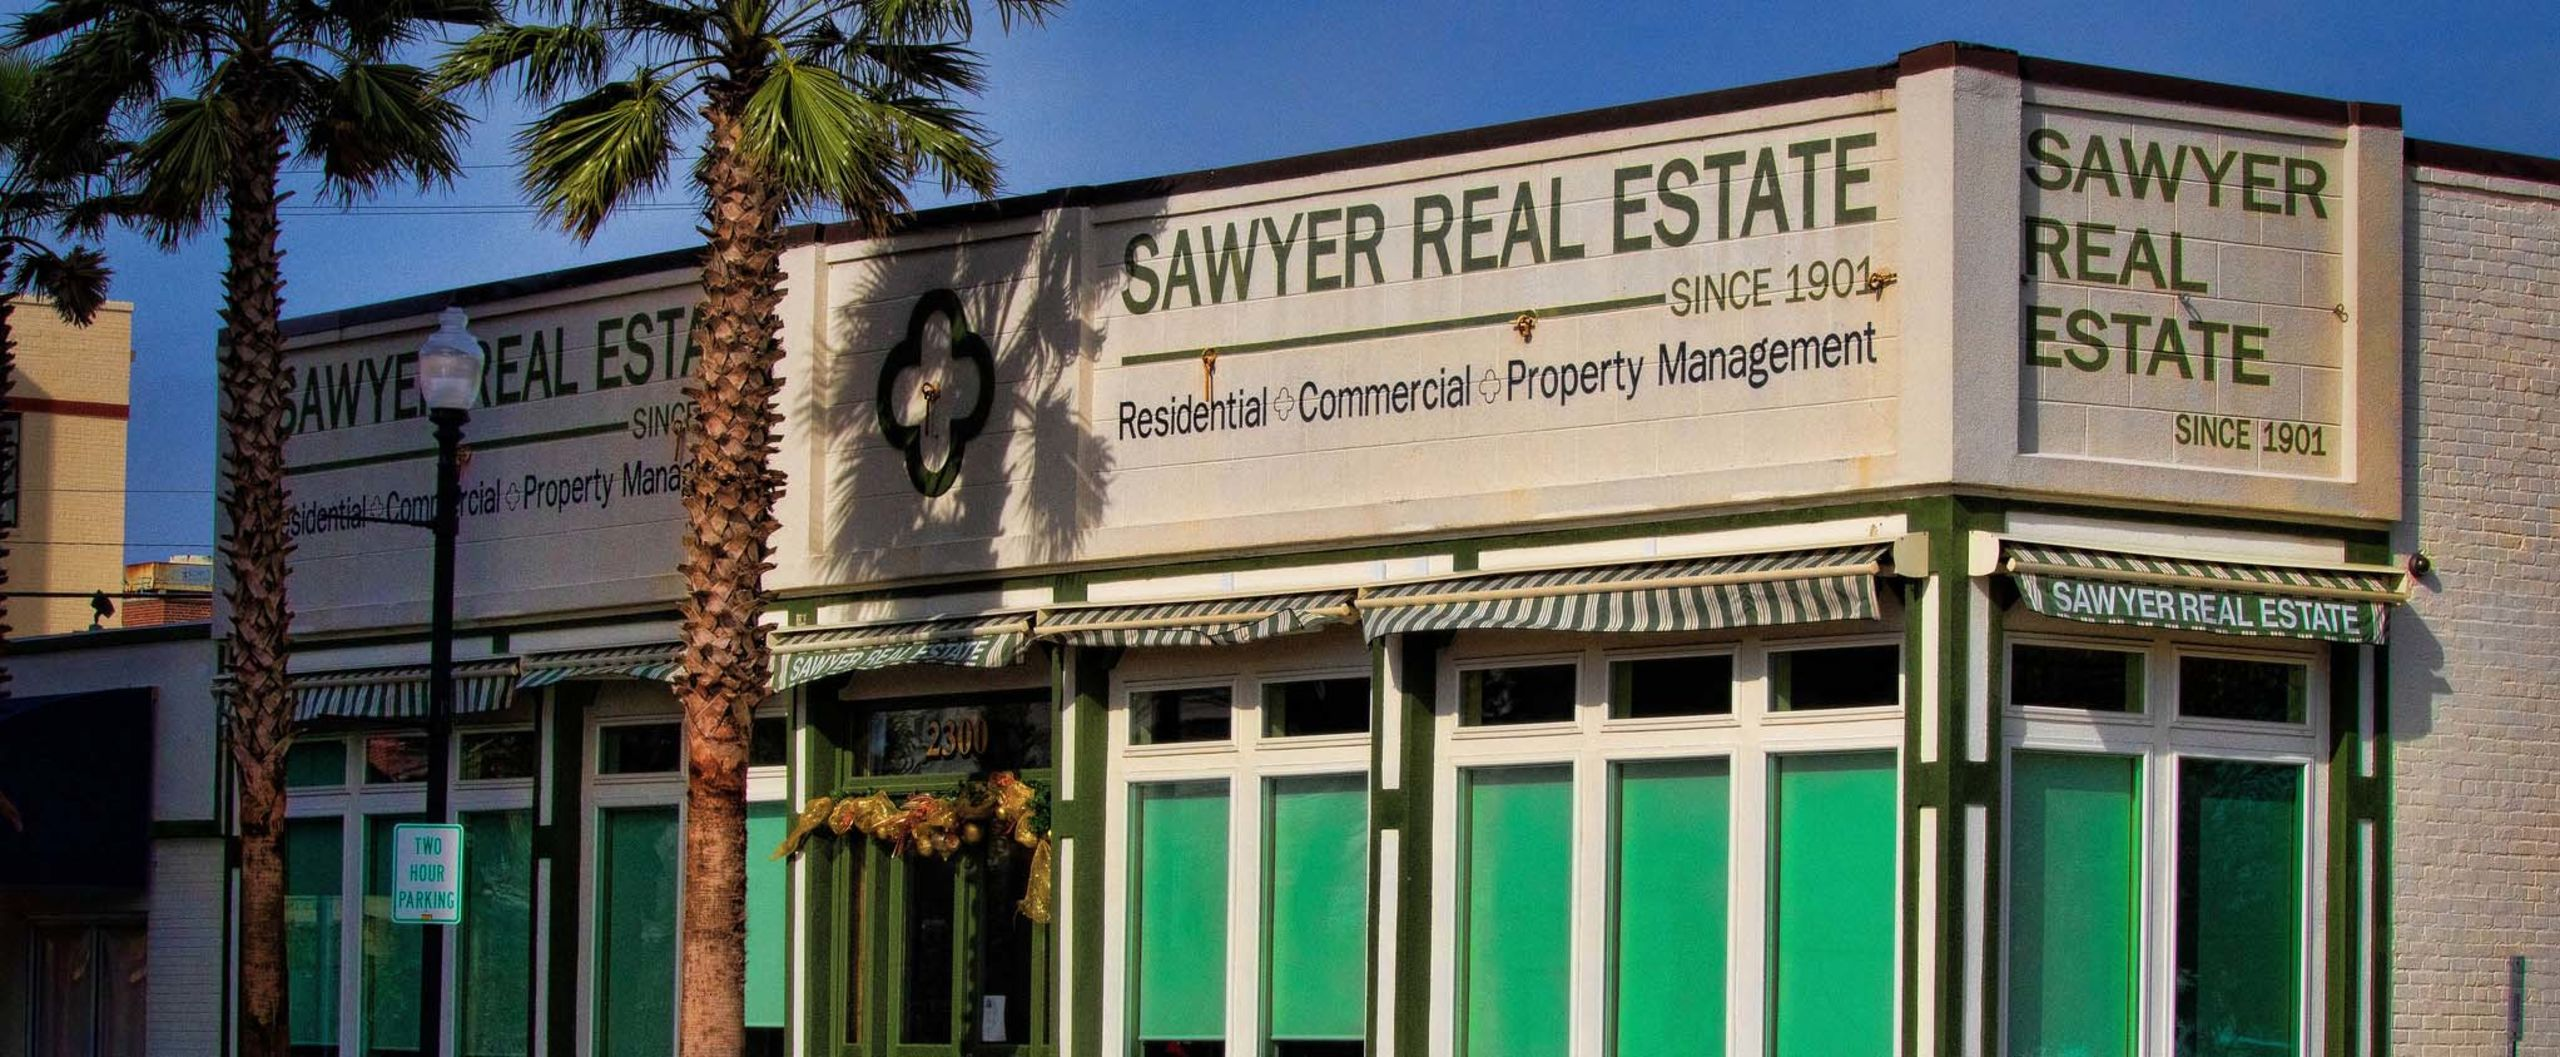 Sawyer Real Estate by JA Sawyer Imaging